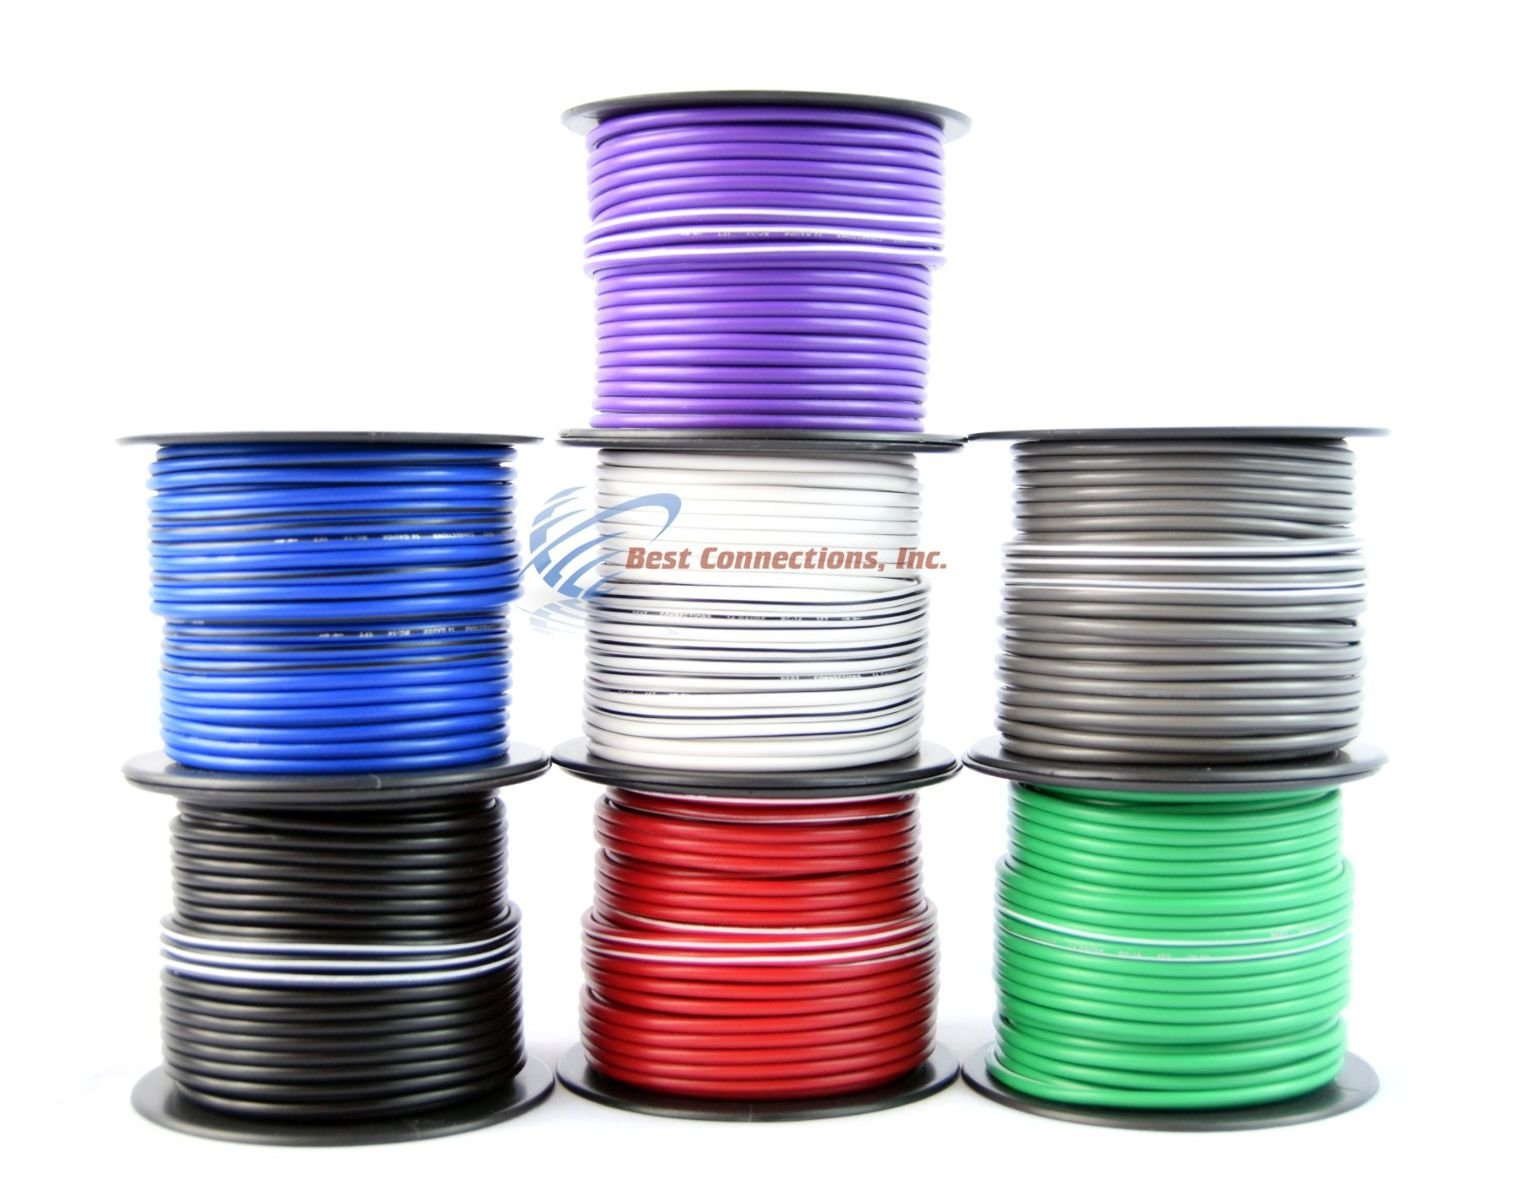 Best Connections 4 Rolls 100 Feet 14 Gauge Stripe Tracer Cable Single Conductor Remote Wire